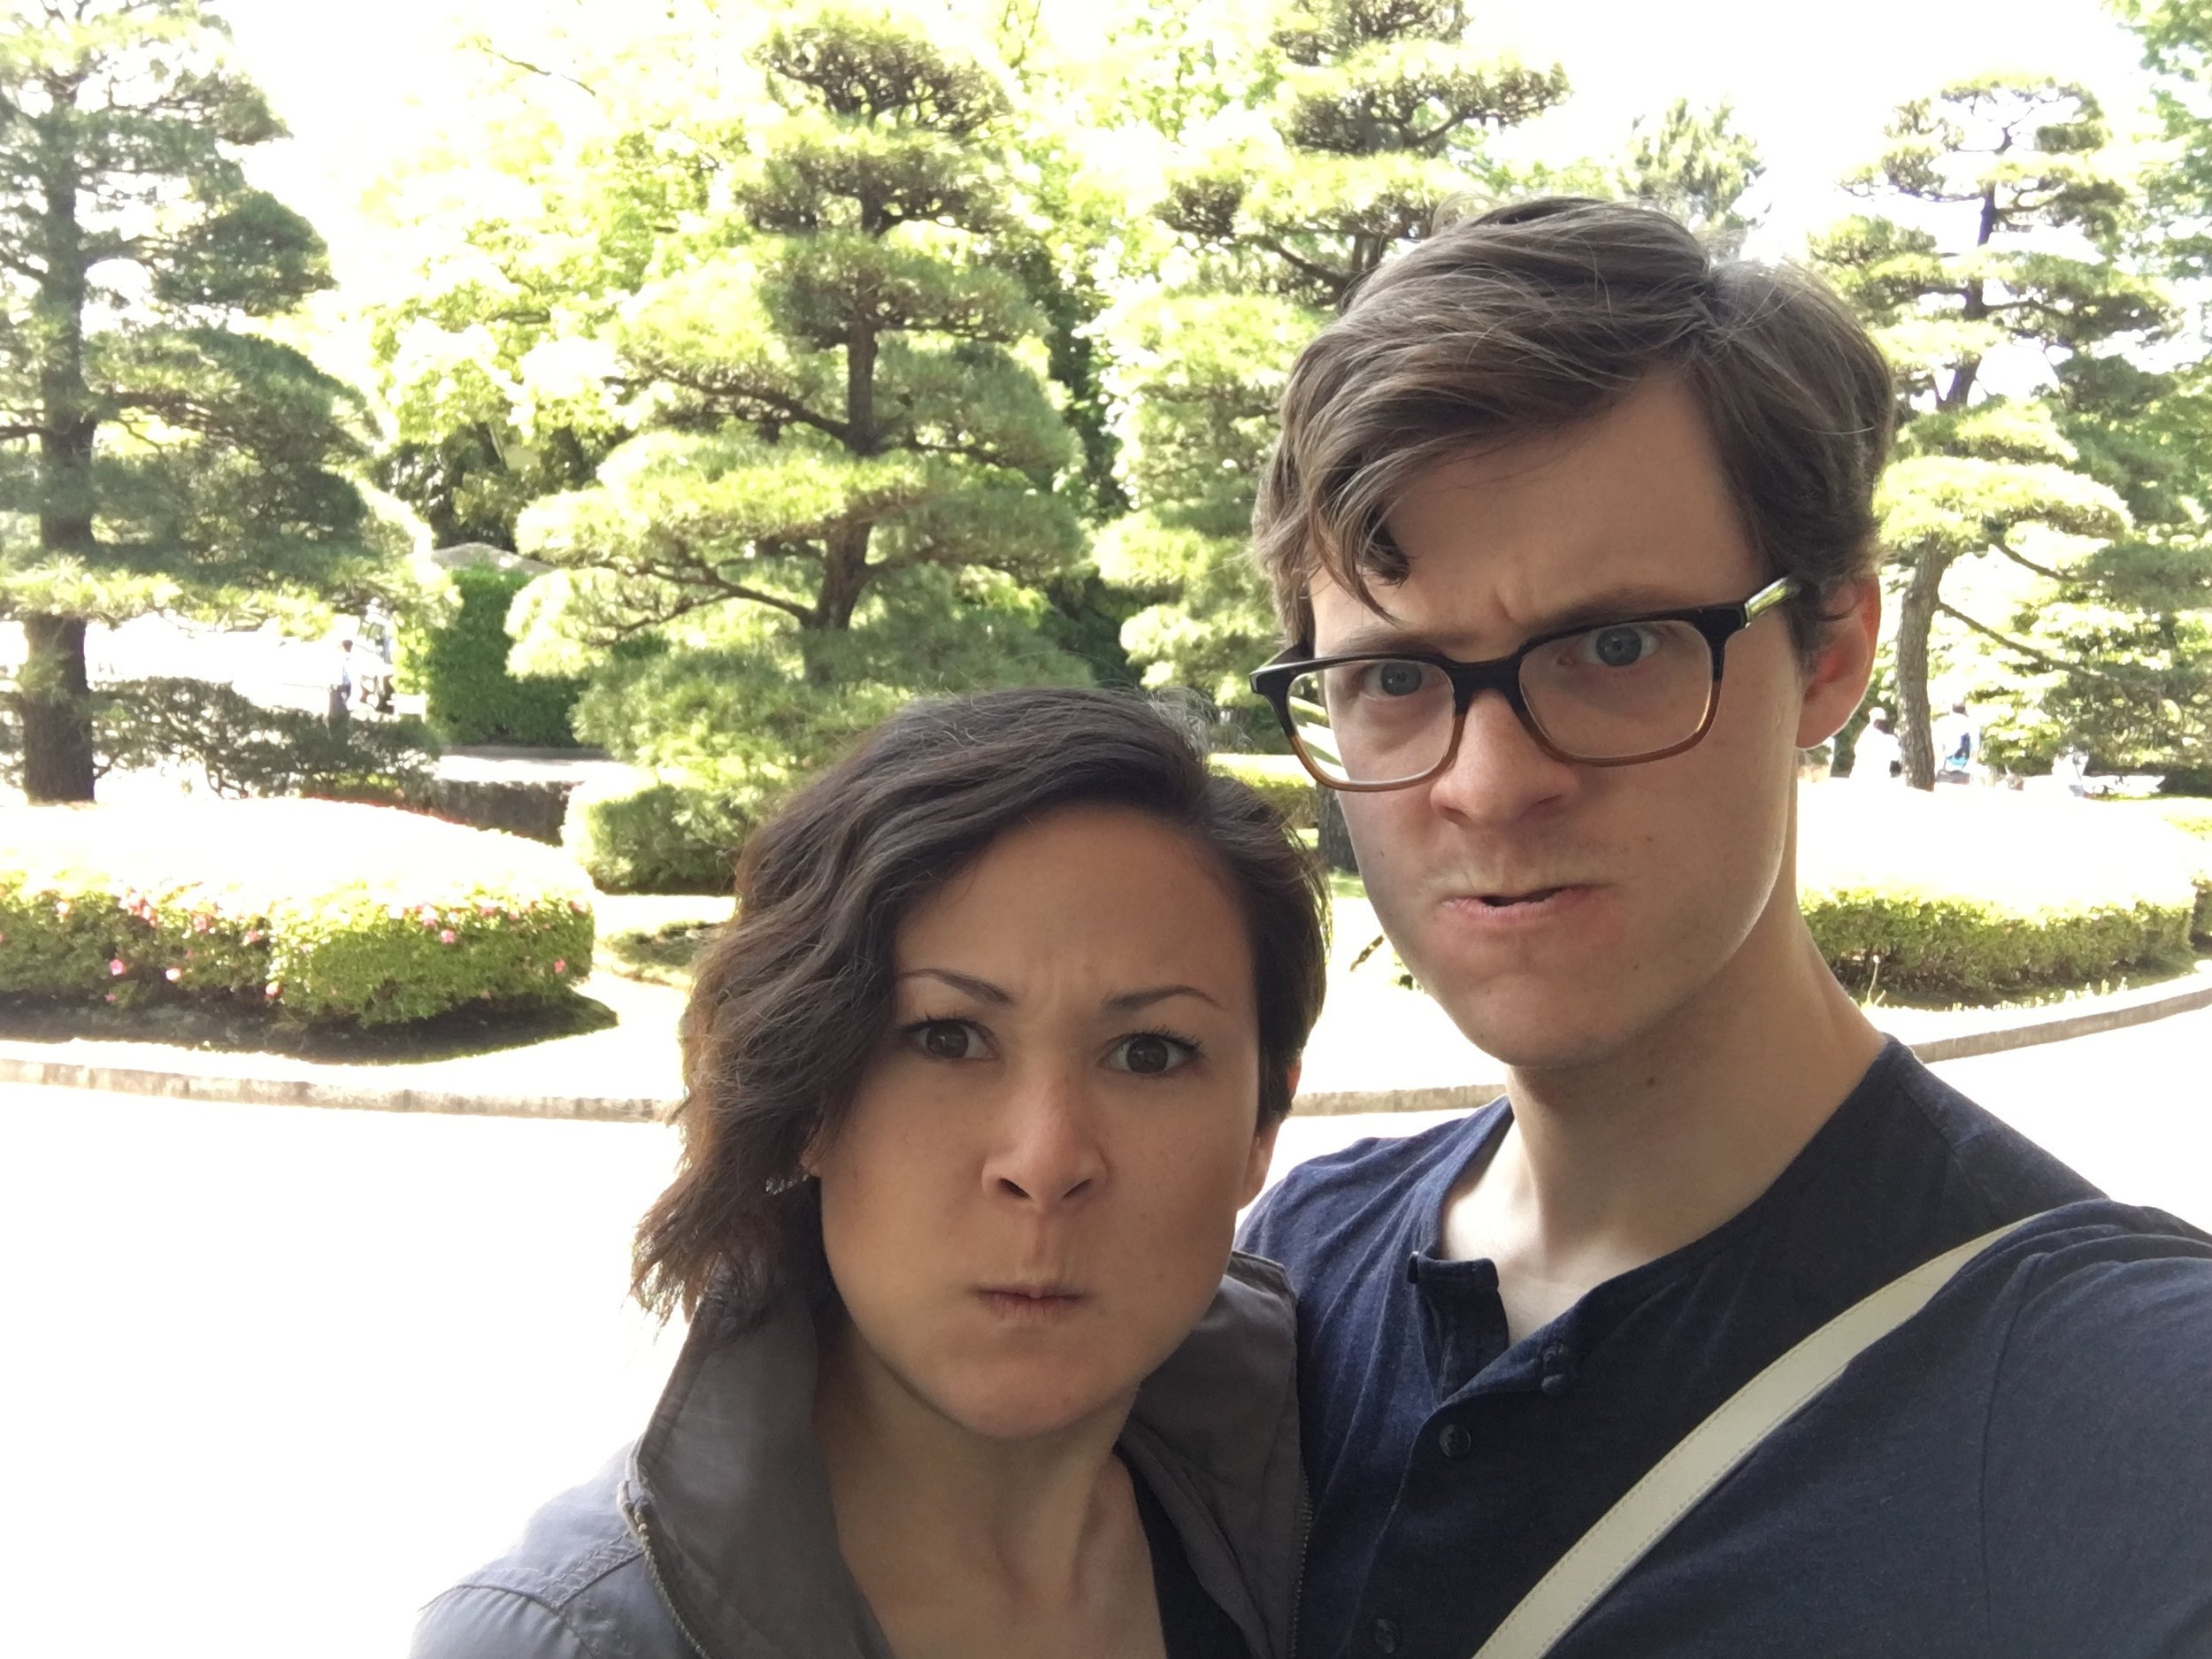 Makin' faces on the East Gardens. No reason.